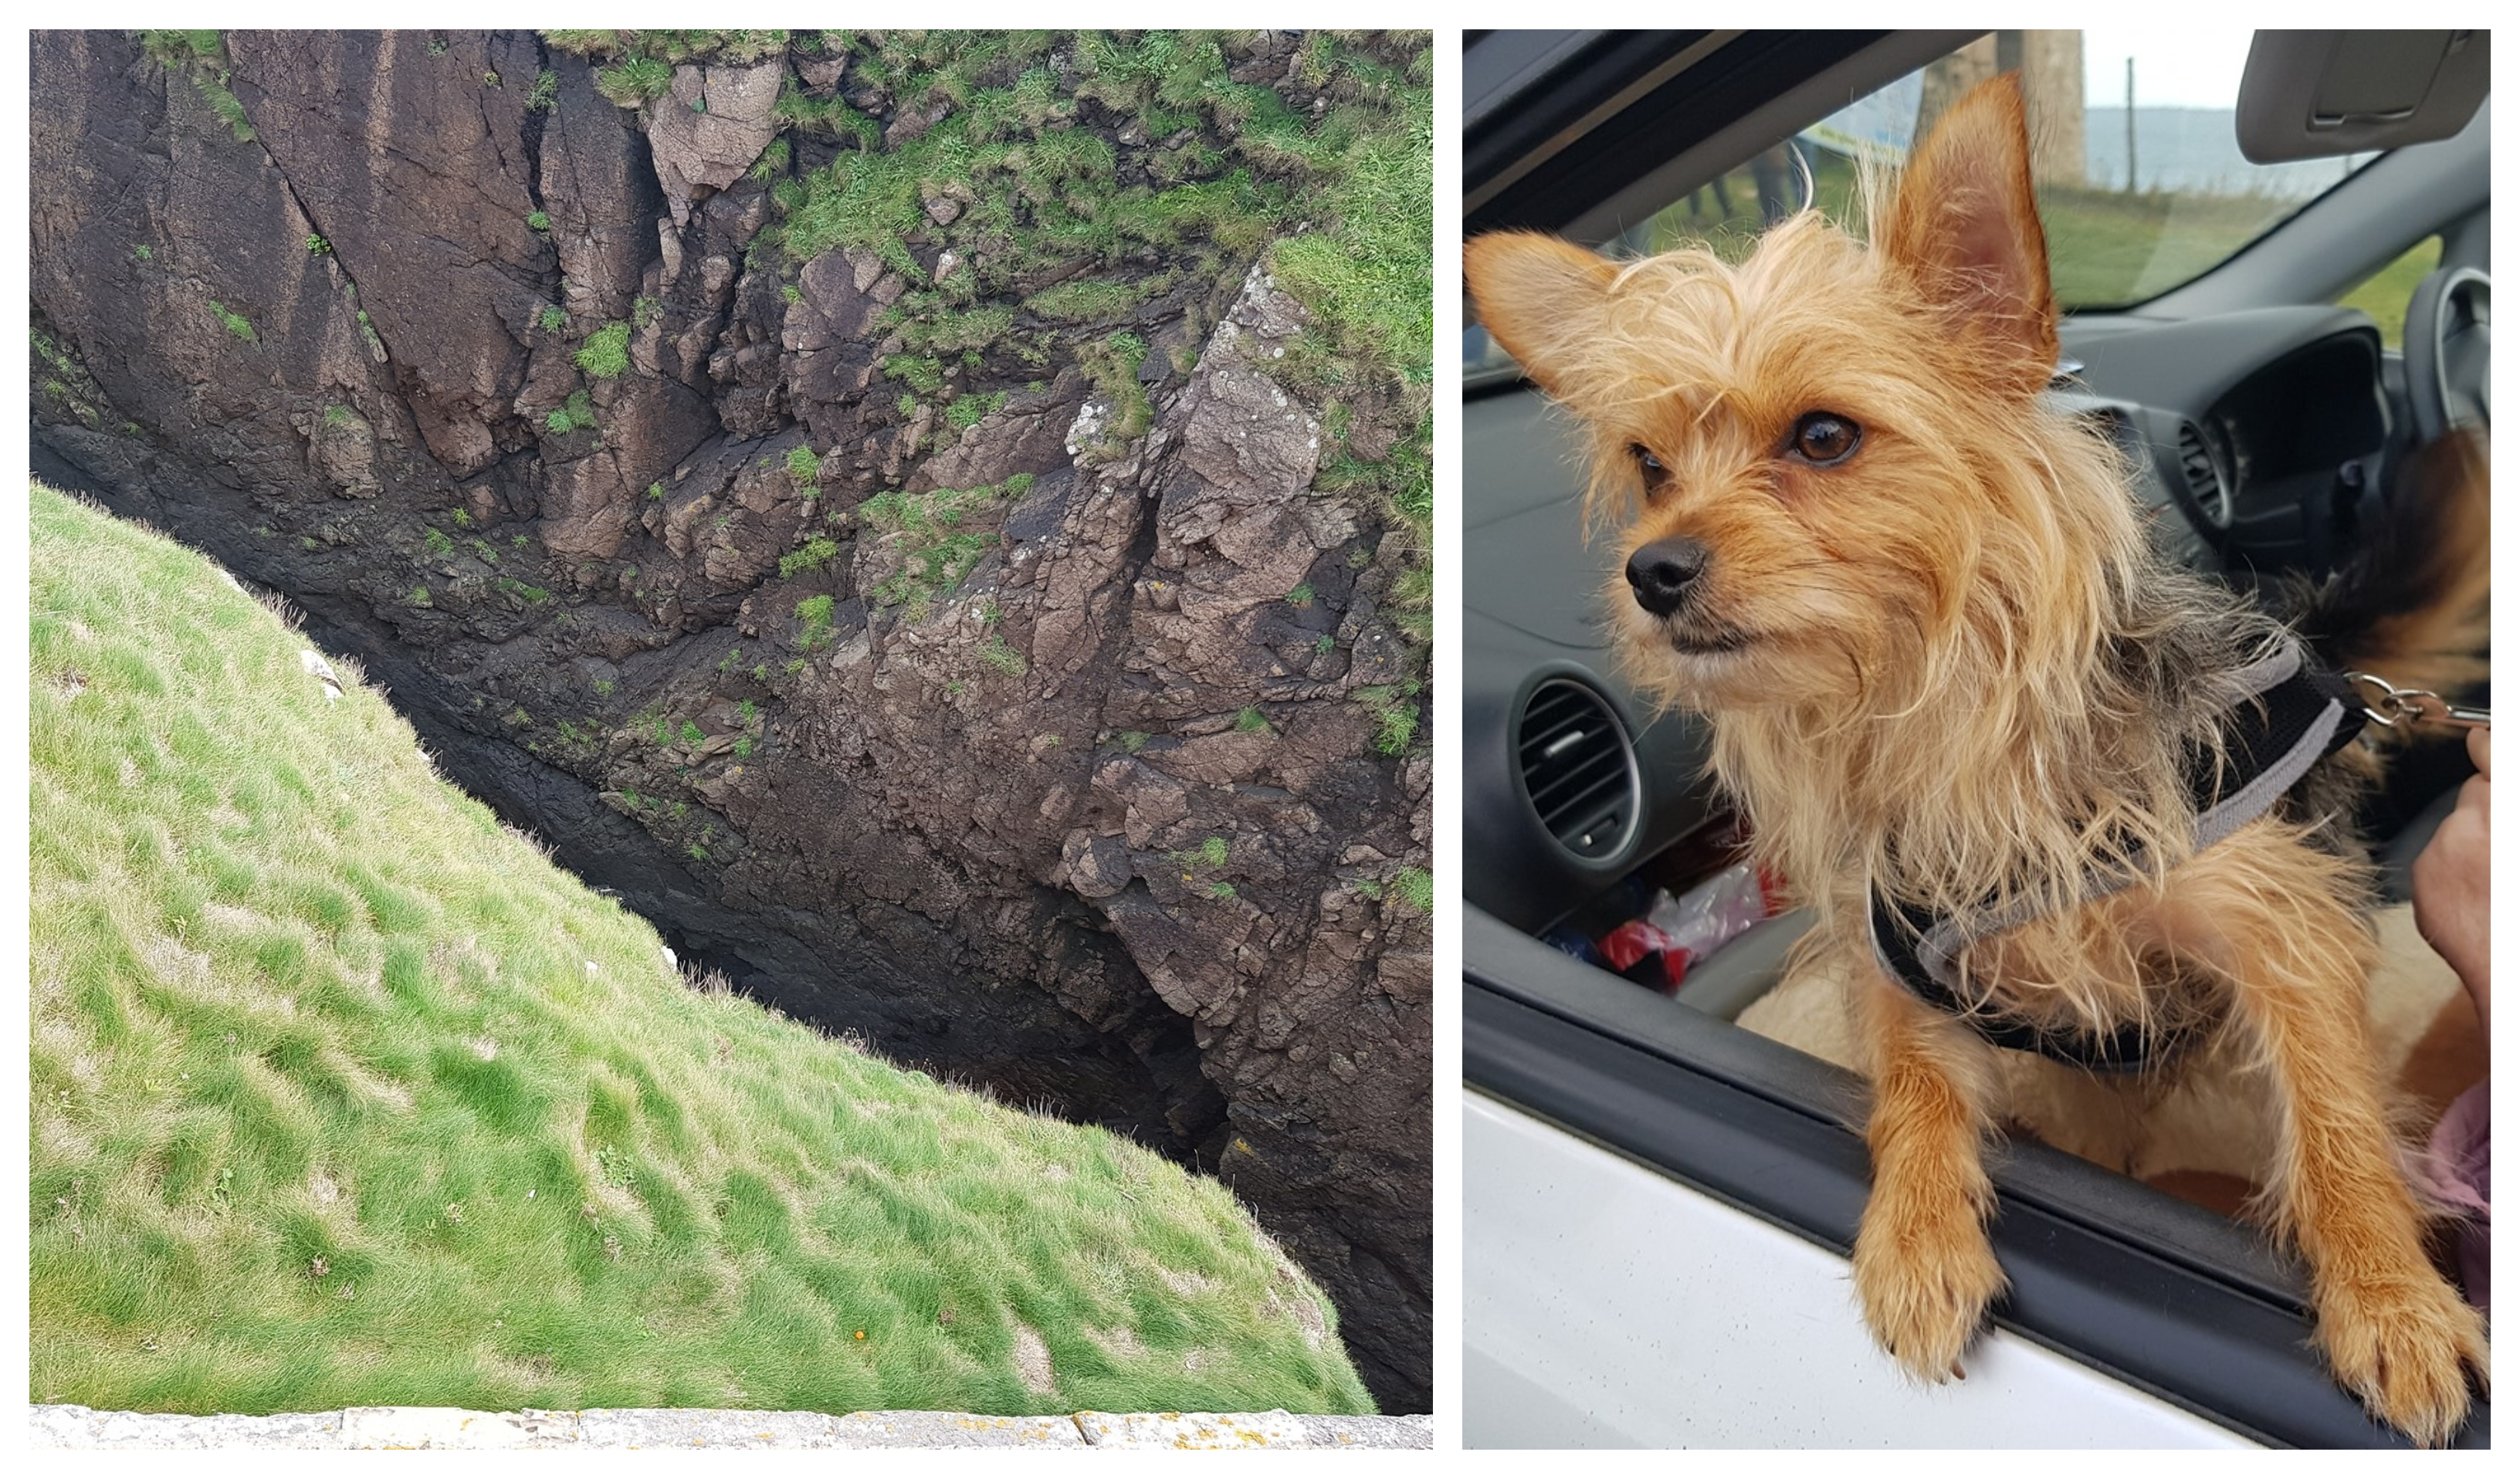 Coastguard teams rescued Billy the small chihuahua/yorkie cross after falling 25 meters over a cliff edge.